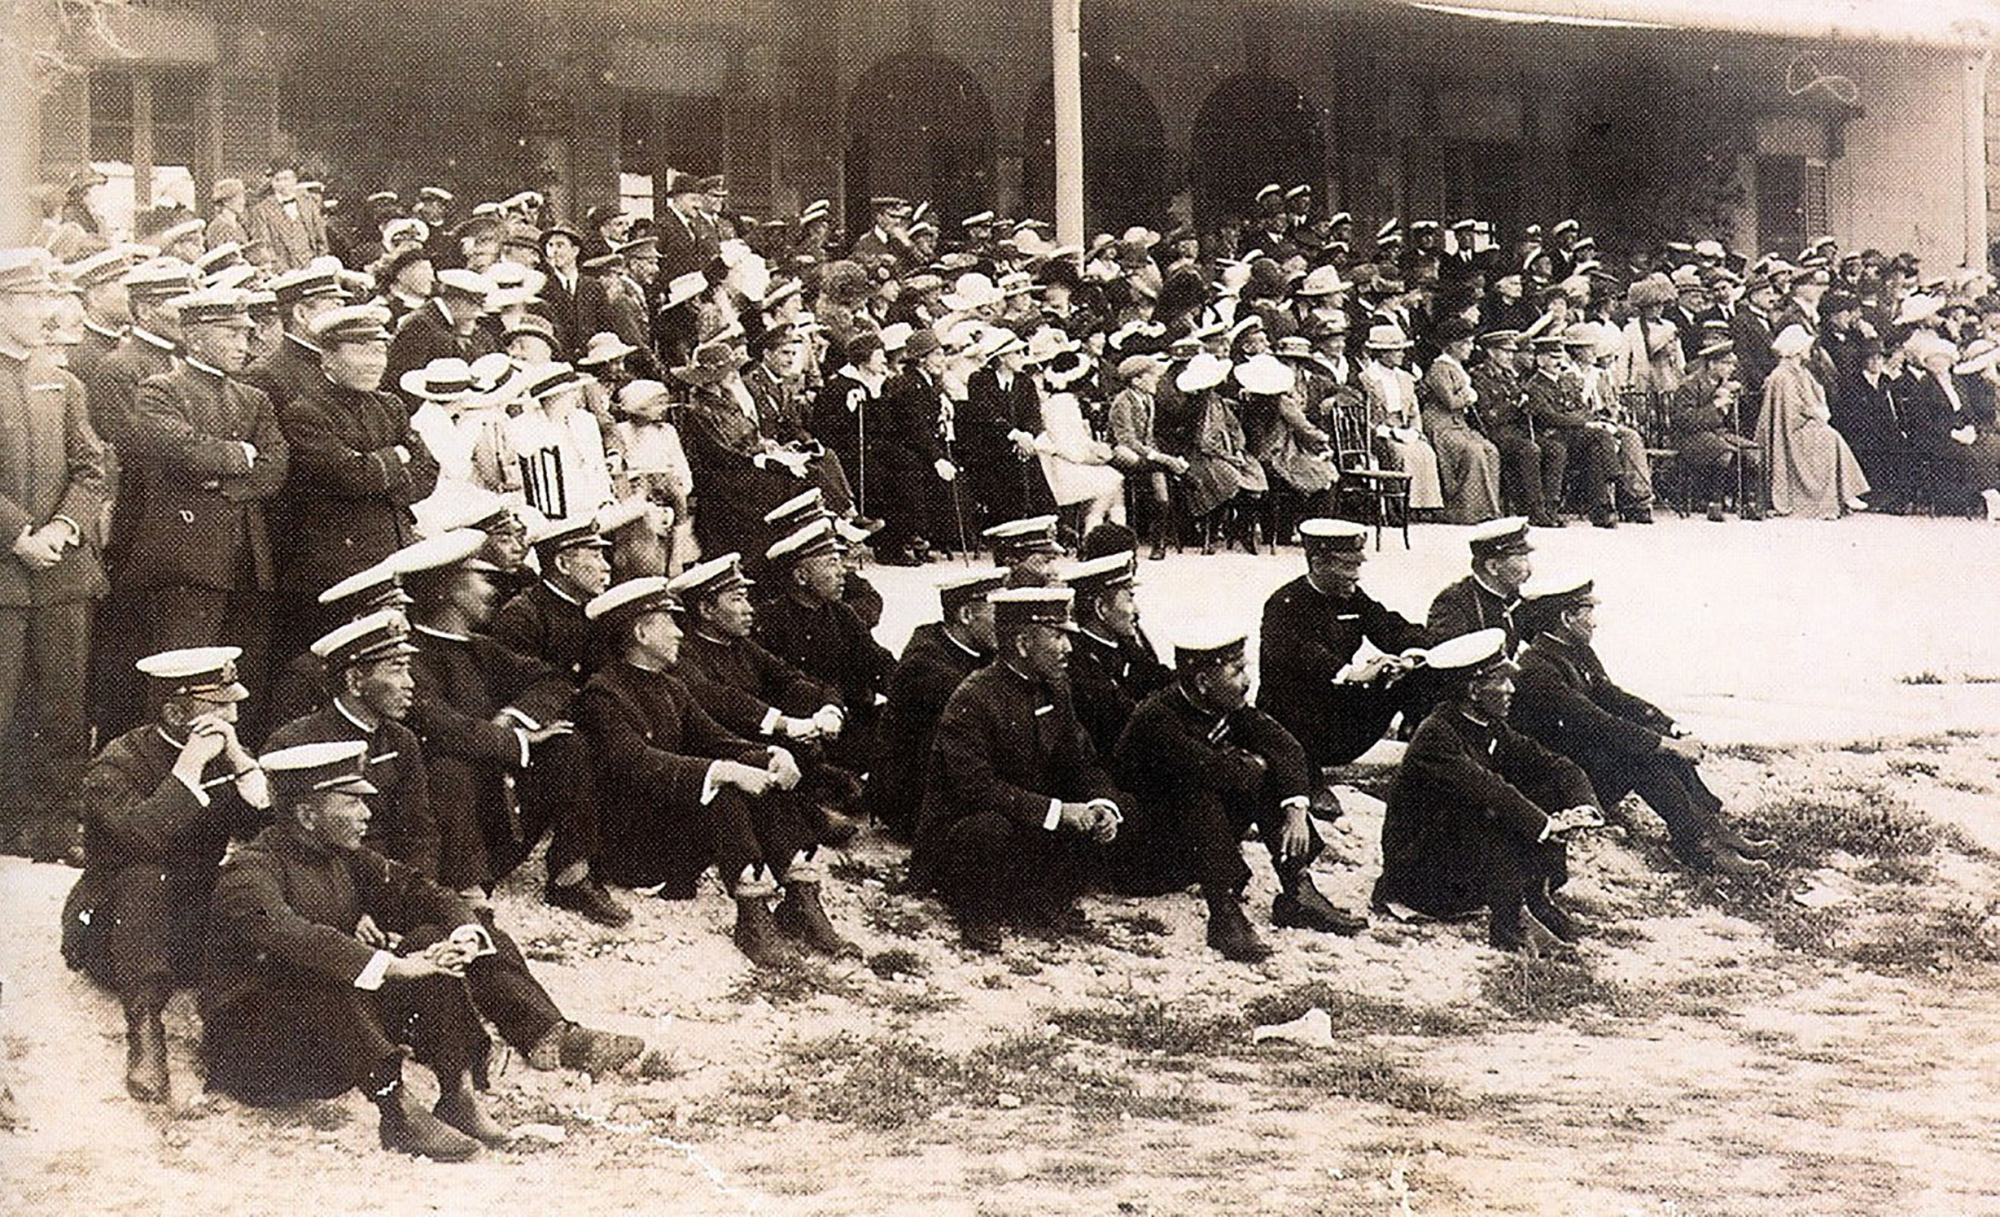 A World War I-era photograph from Malta's National War Museum shows Imperial Japanese Navy officers sitting on a beach on the island in the Mediterranean Sea.   KYODO